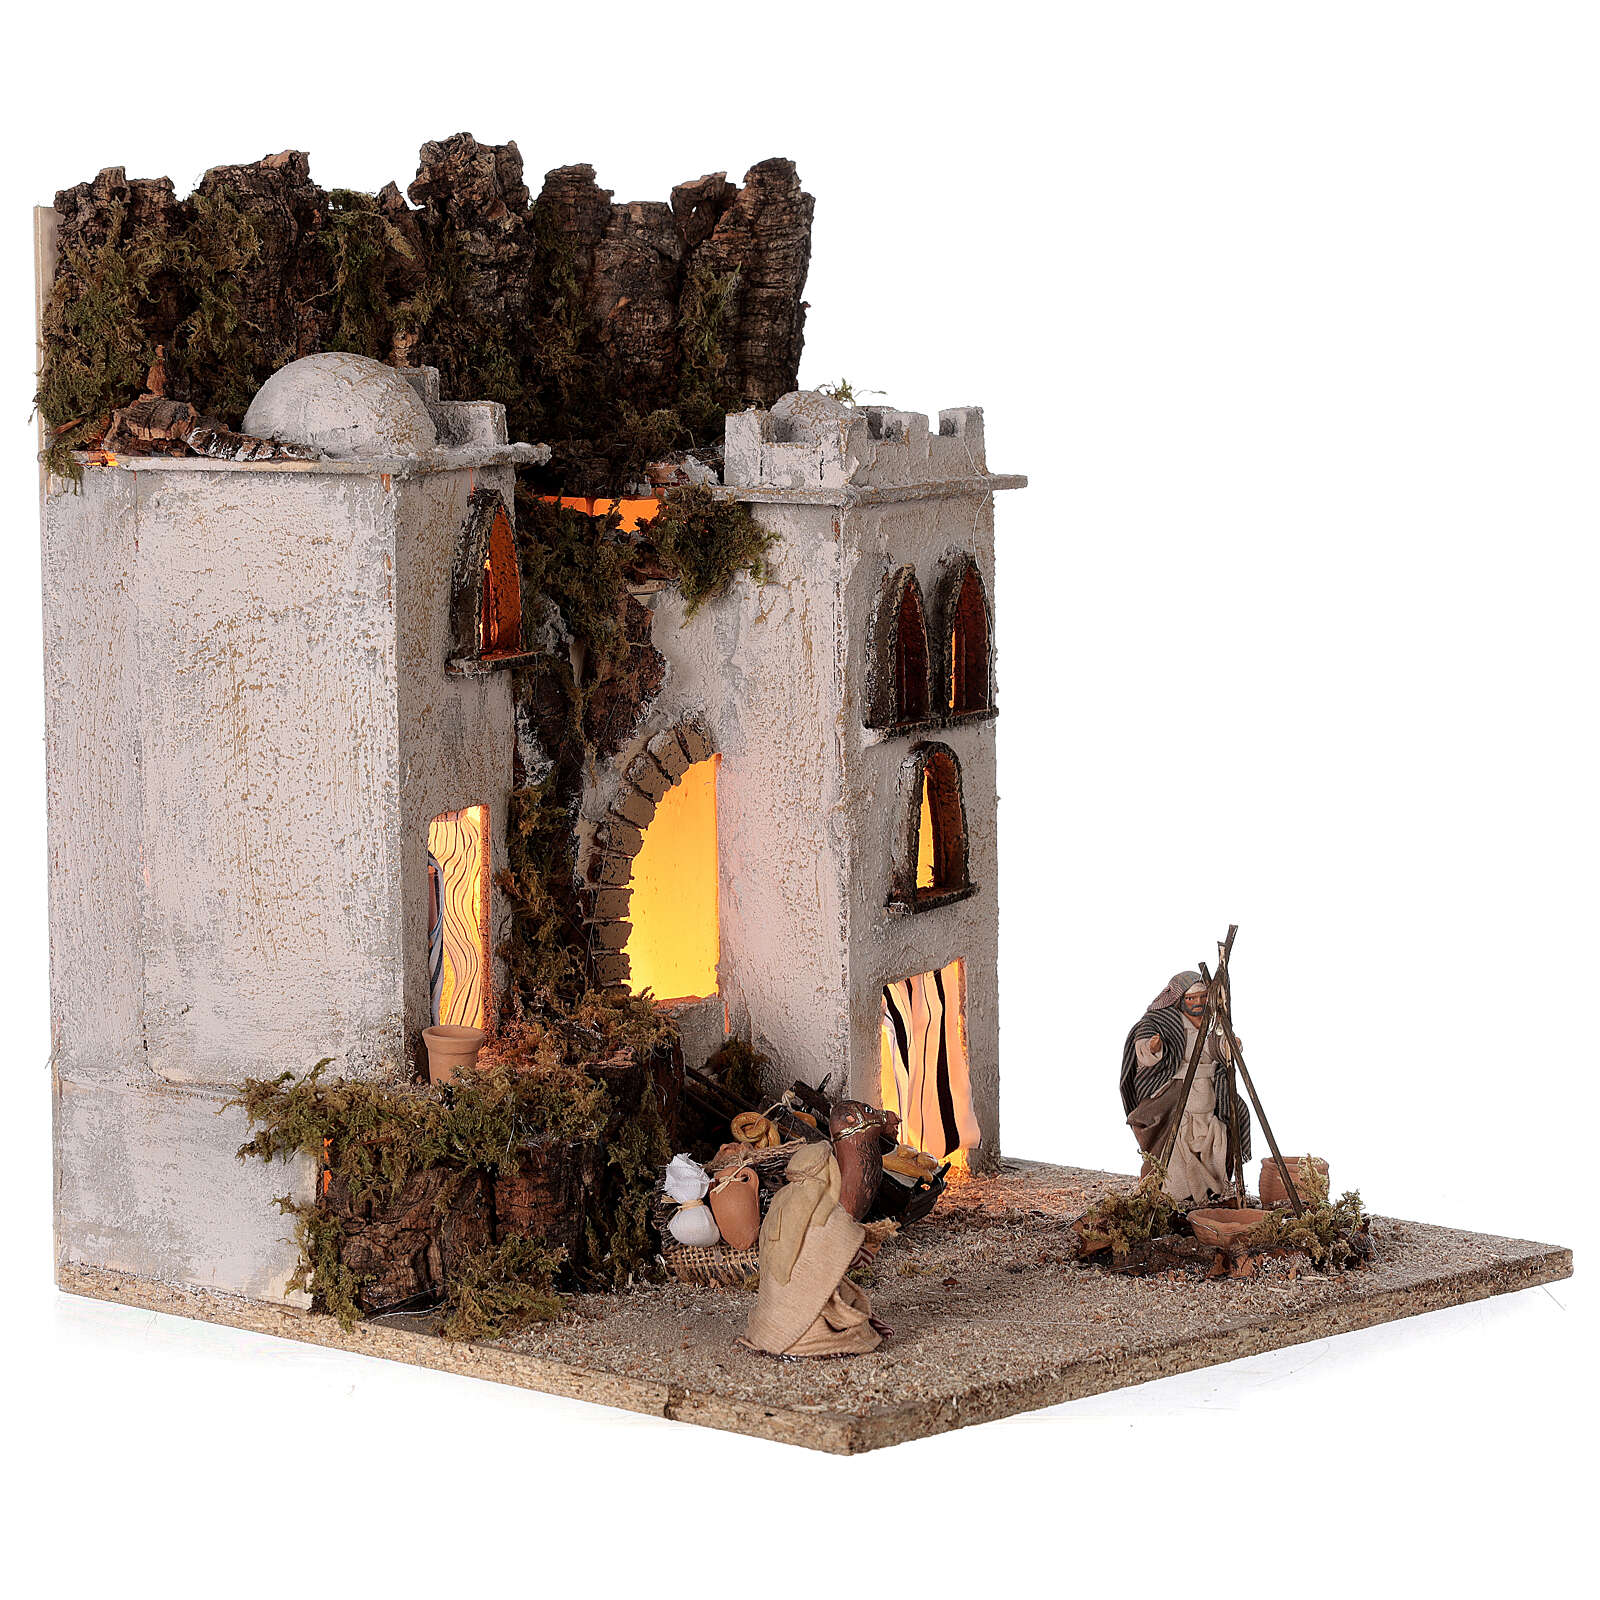 Arab village (E) market firepace Neapolitan Nativity Scene for 8 cm figurines 40x35x35 cm 4